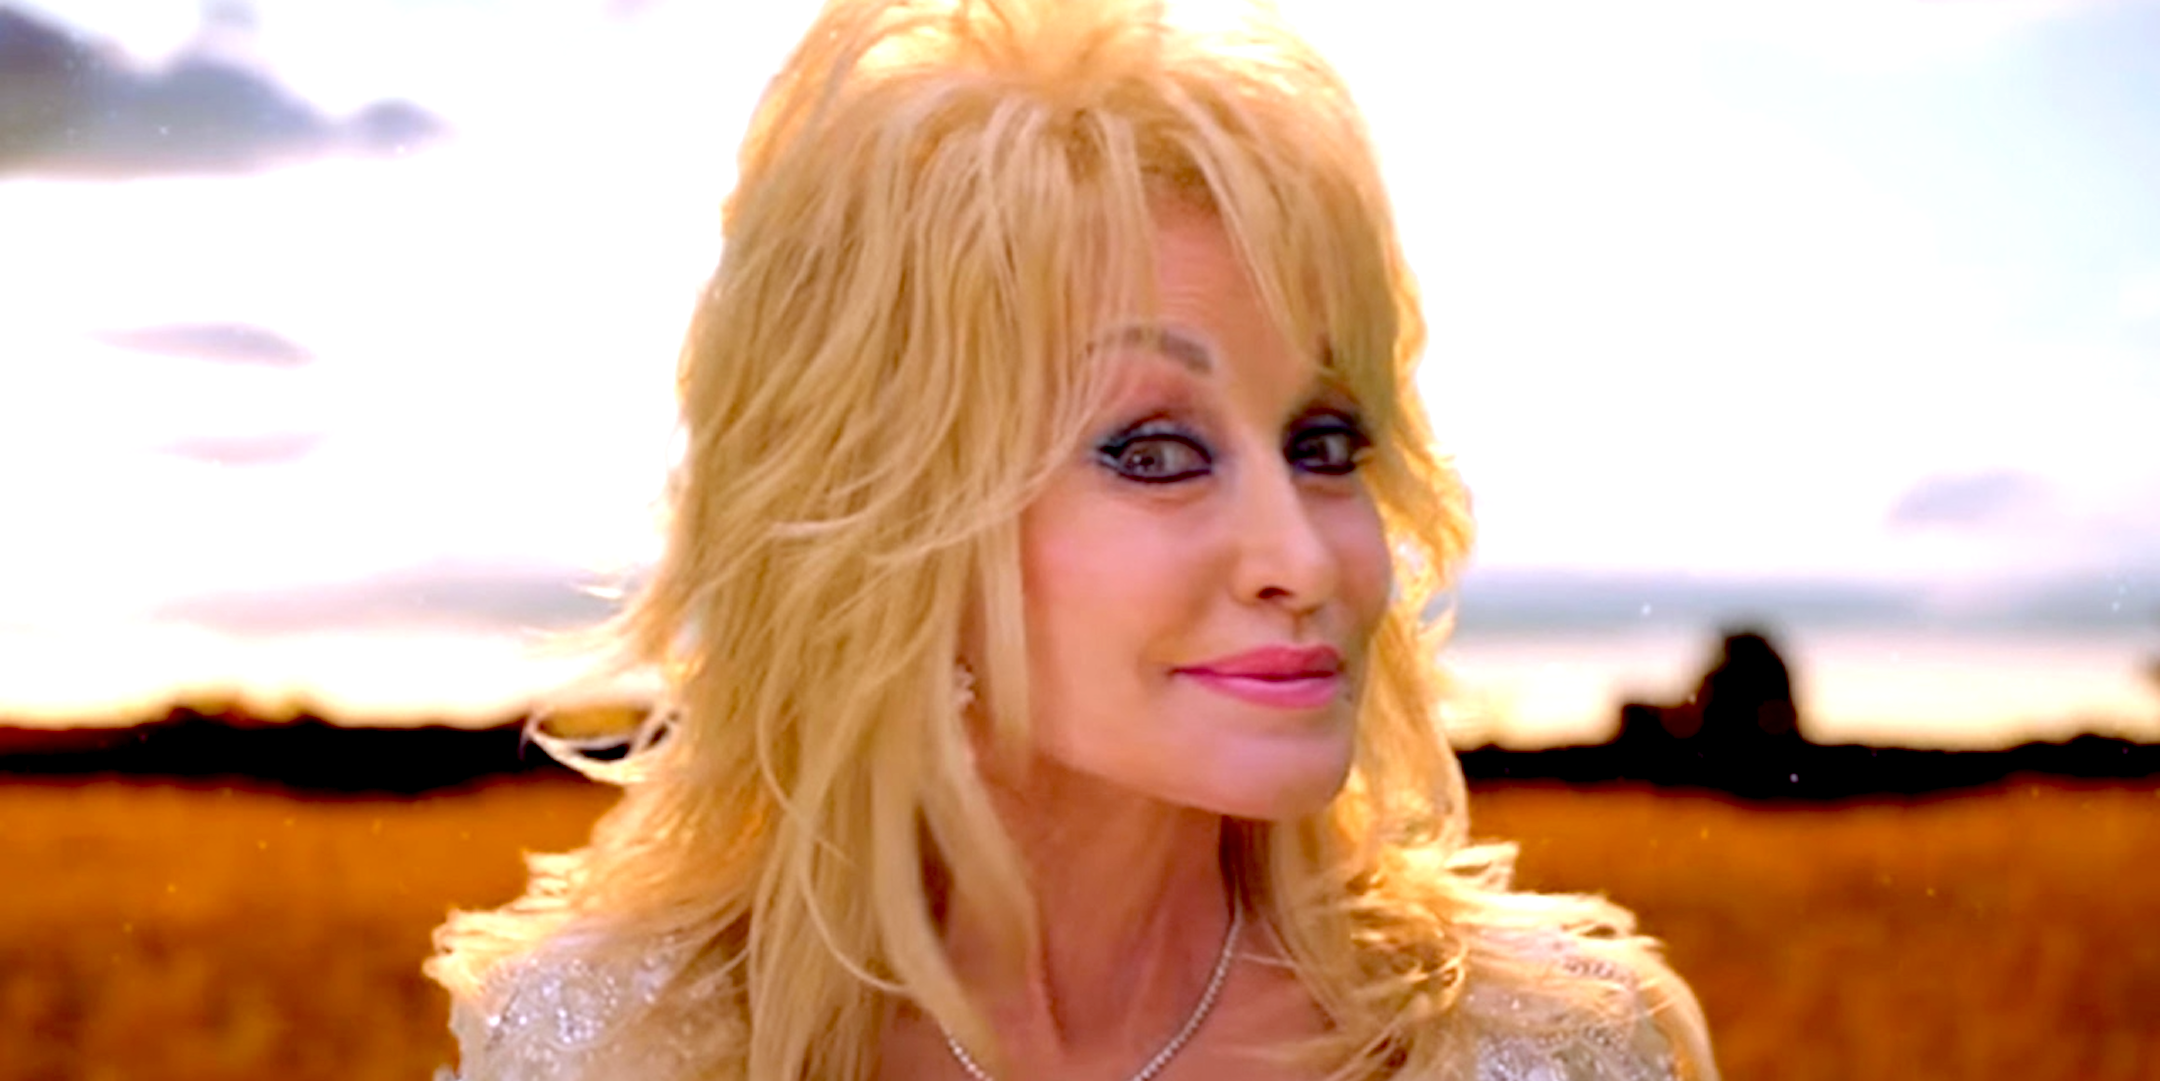 Music, celebs, country, dolly parton, music video, screenshot